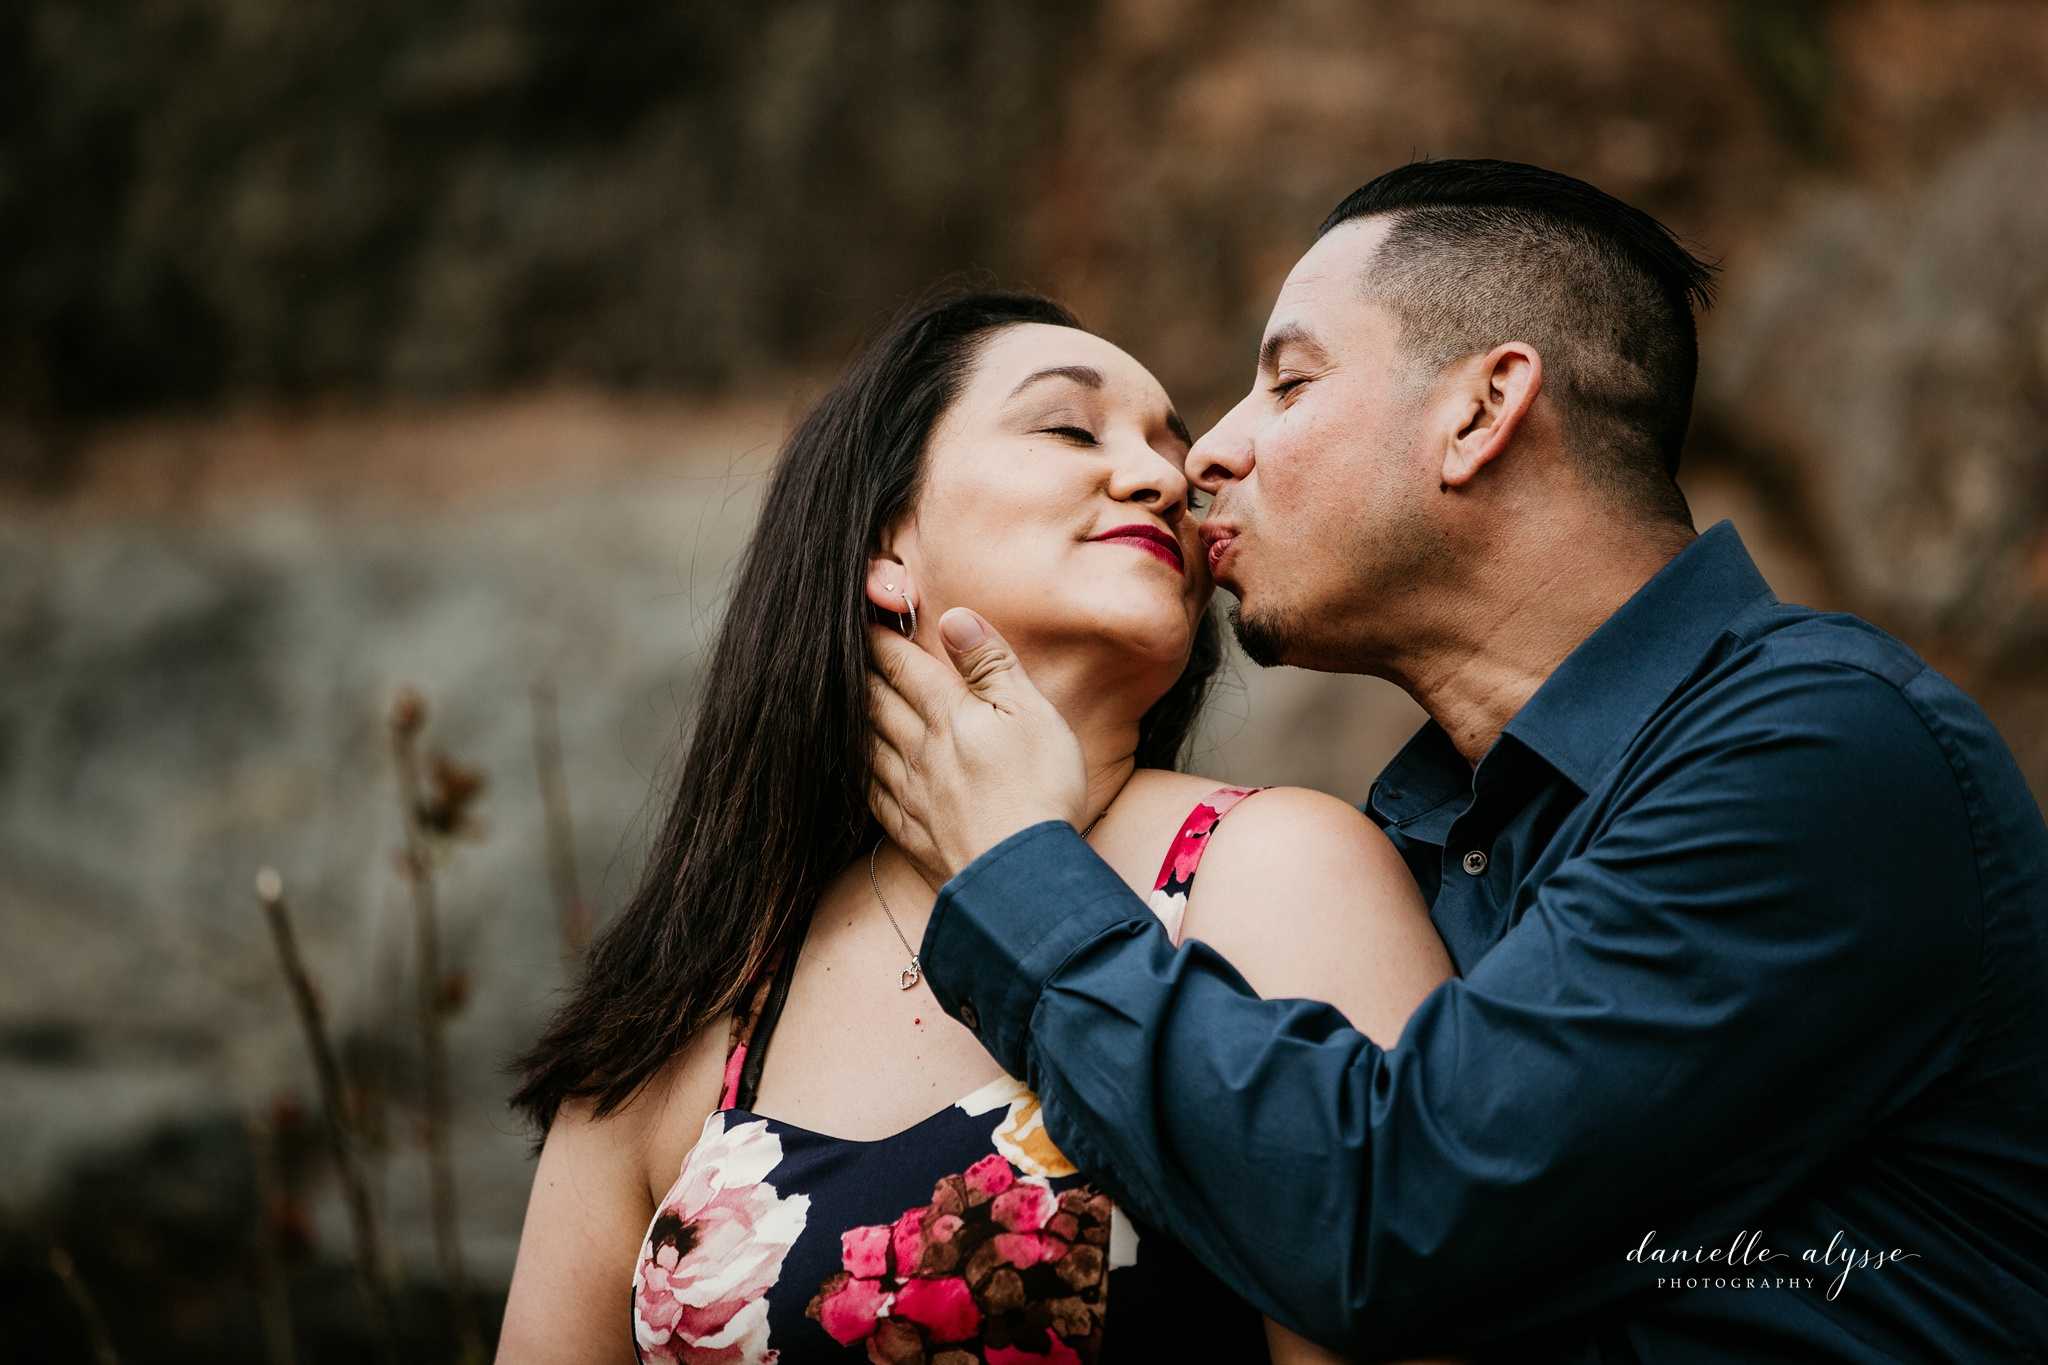 180425_engagement_monica_auburn_water_falls_auburn_danielle_alysse_photography_sacramento_photographer_blog_40_WEB.jpg